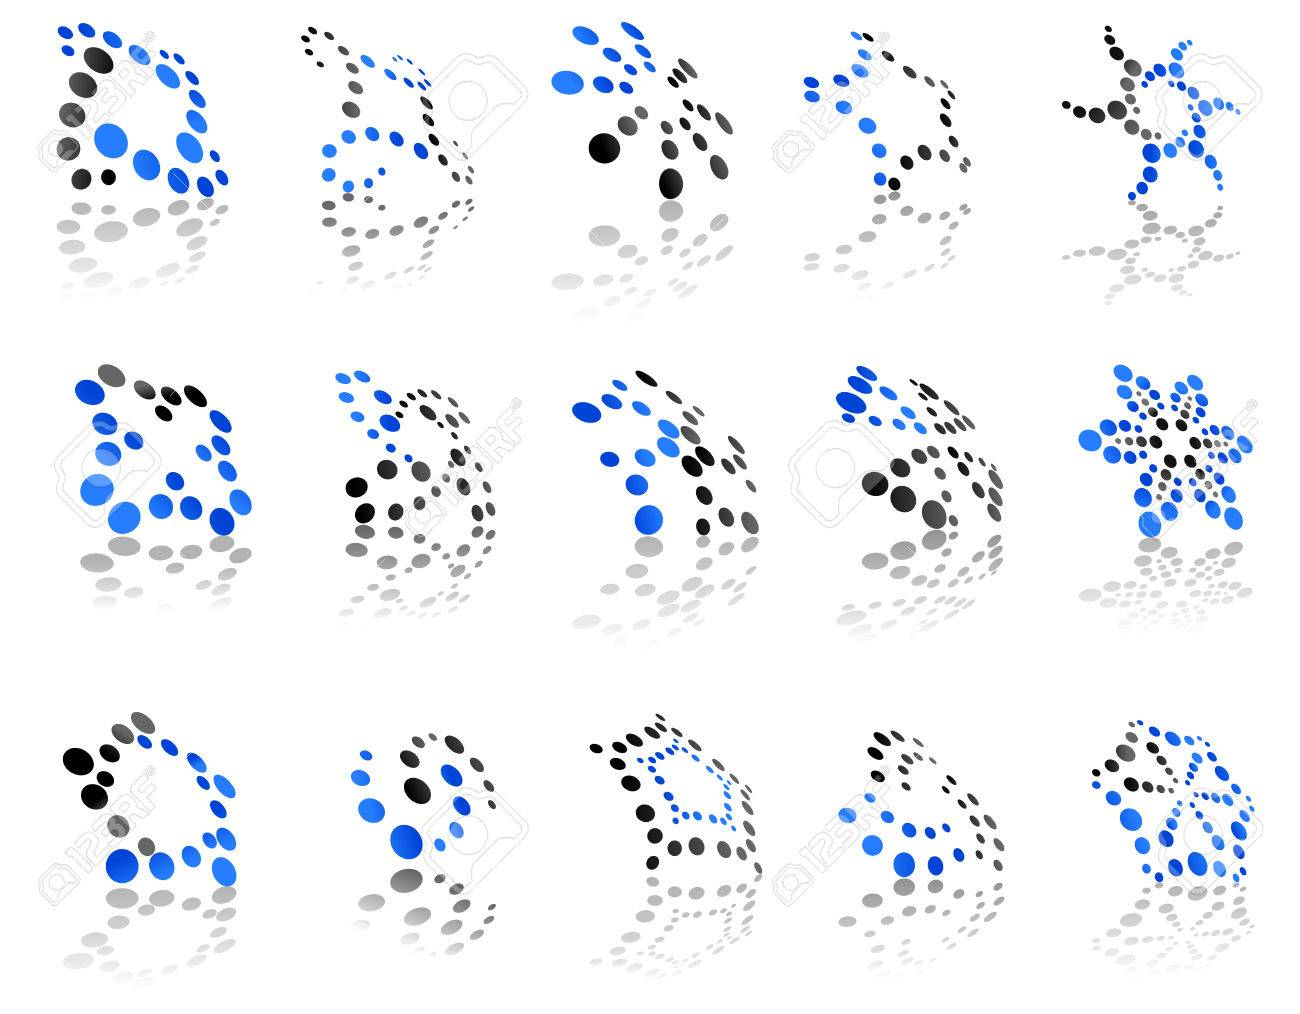 abstract icons with blue and grey dots in different shapes all